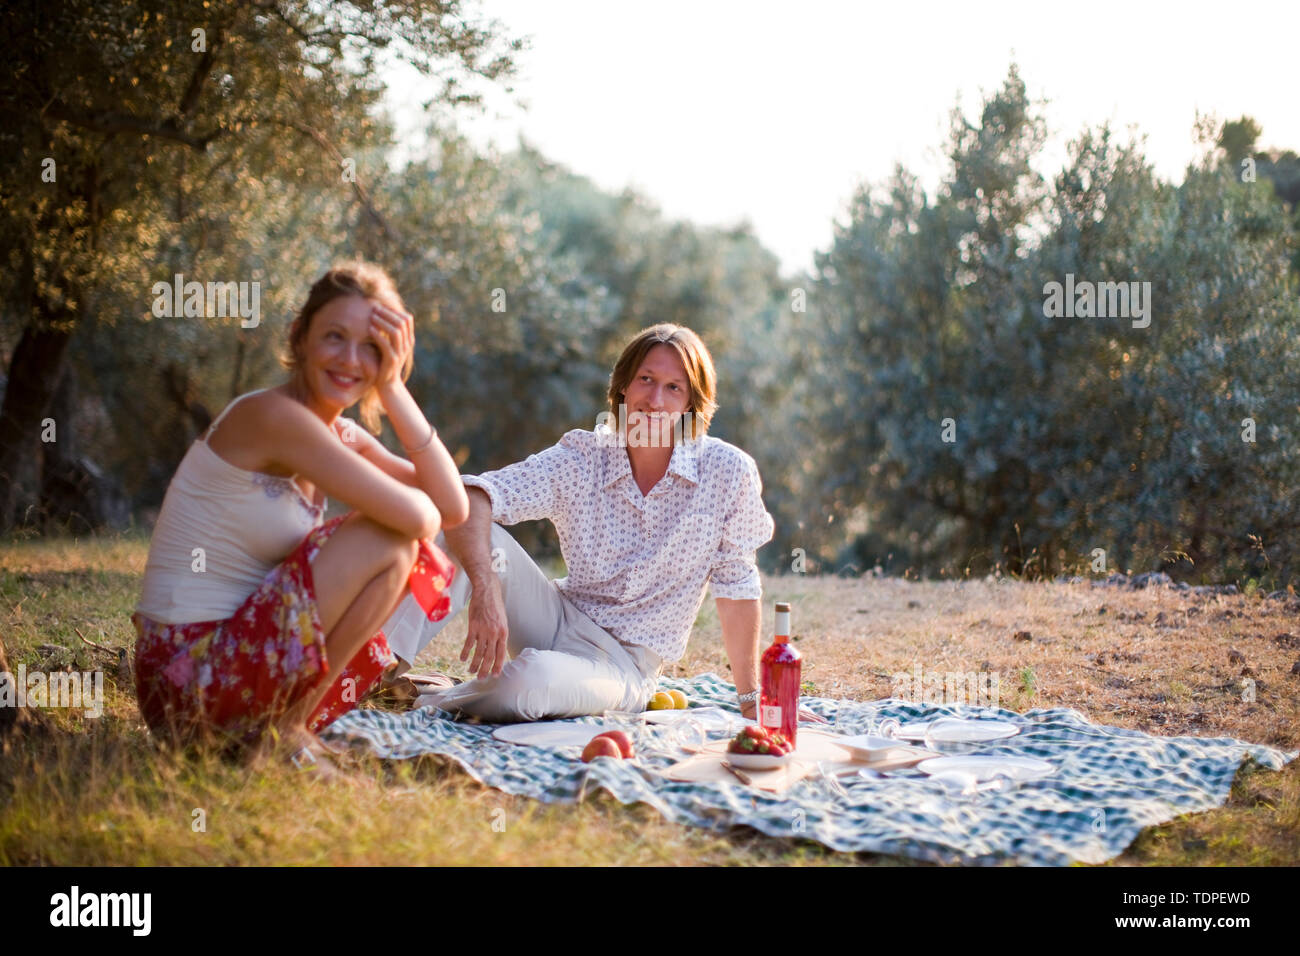 Mid-adult couple having a picnic in a country field. - Stock Image